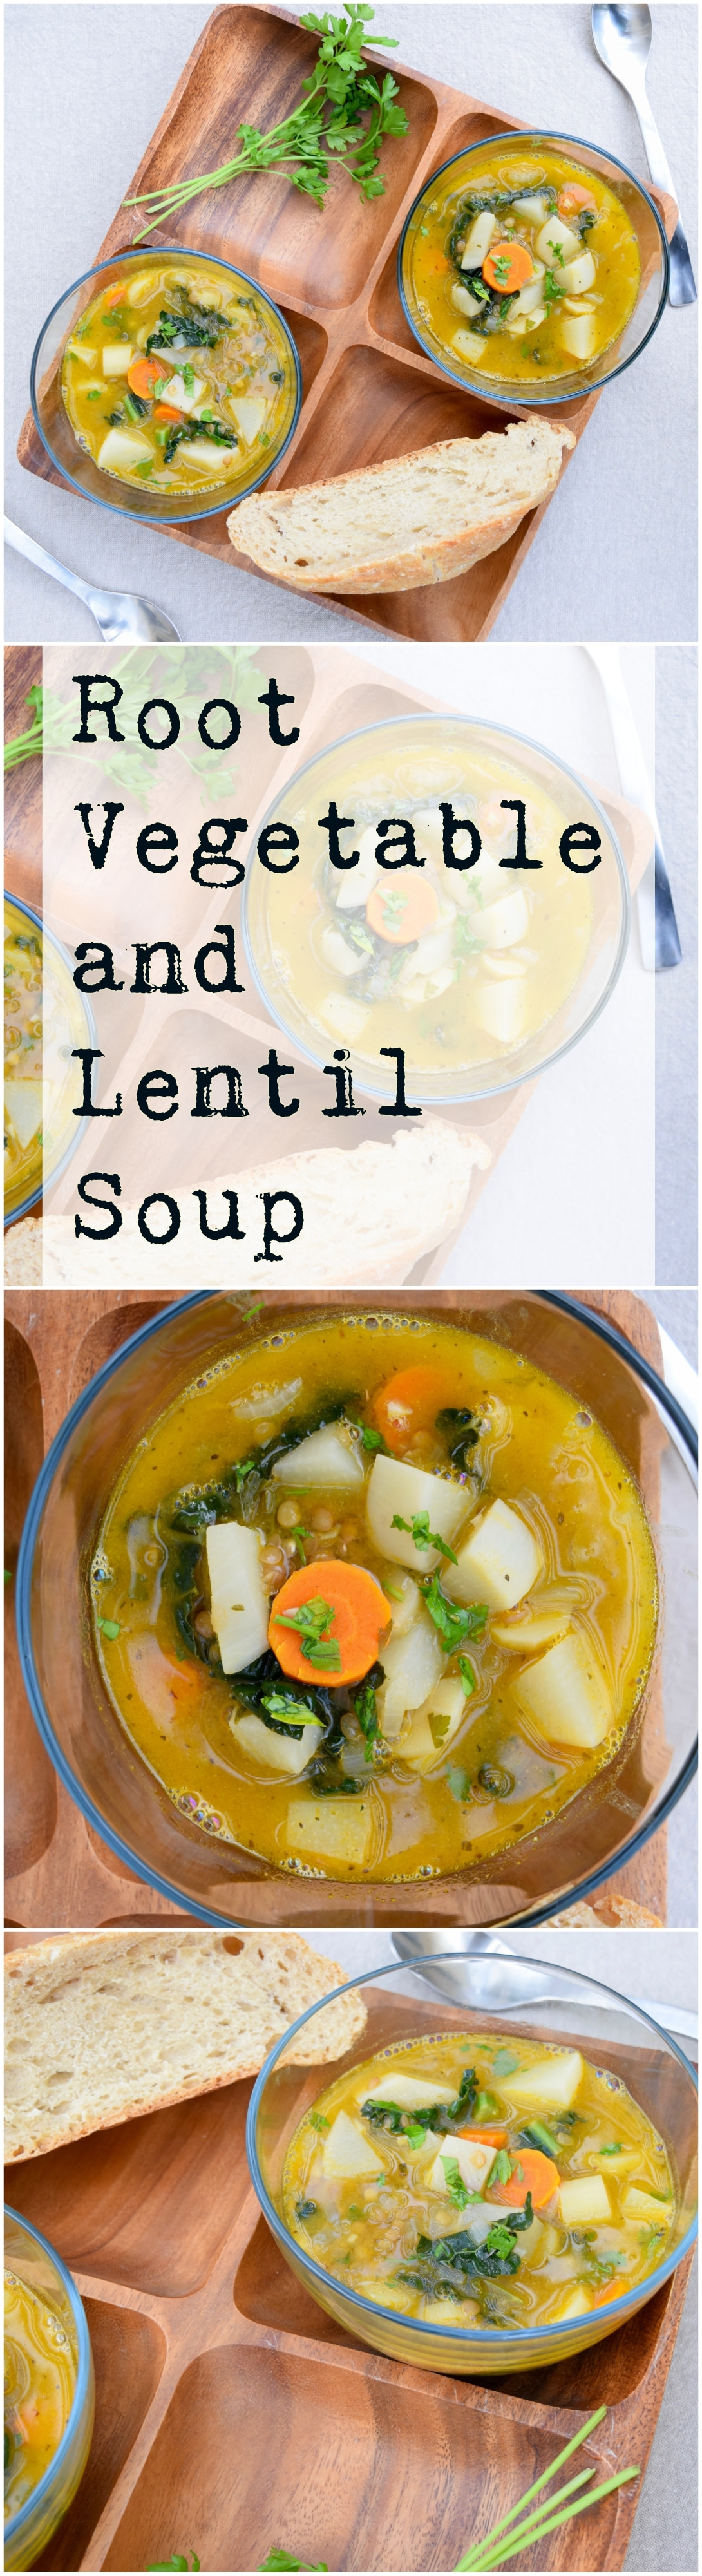 Root Vegetable and Lentil Soup | Earth Powered Family